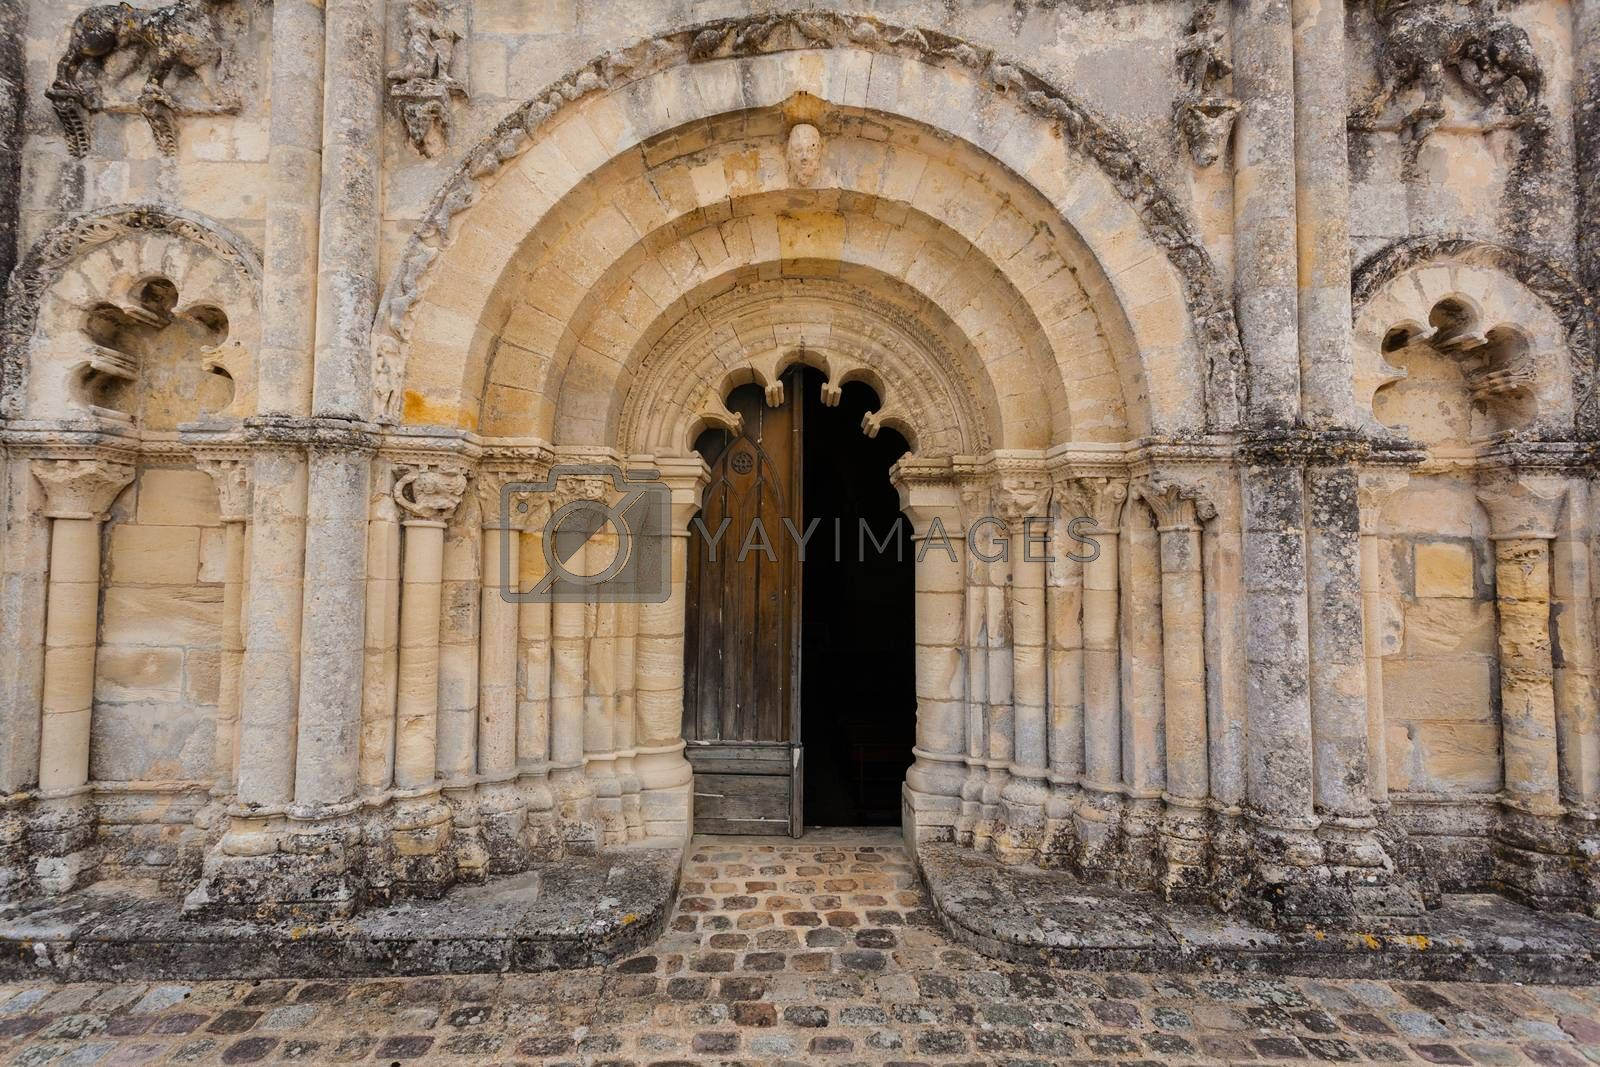 Full view of the main door of Petit Palais et Cornemp romanesque church, Gironde France